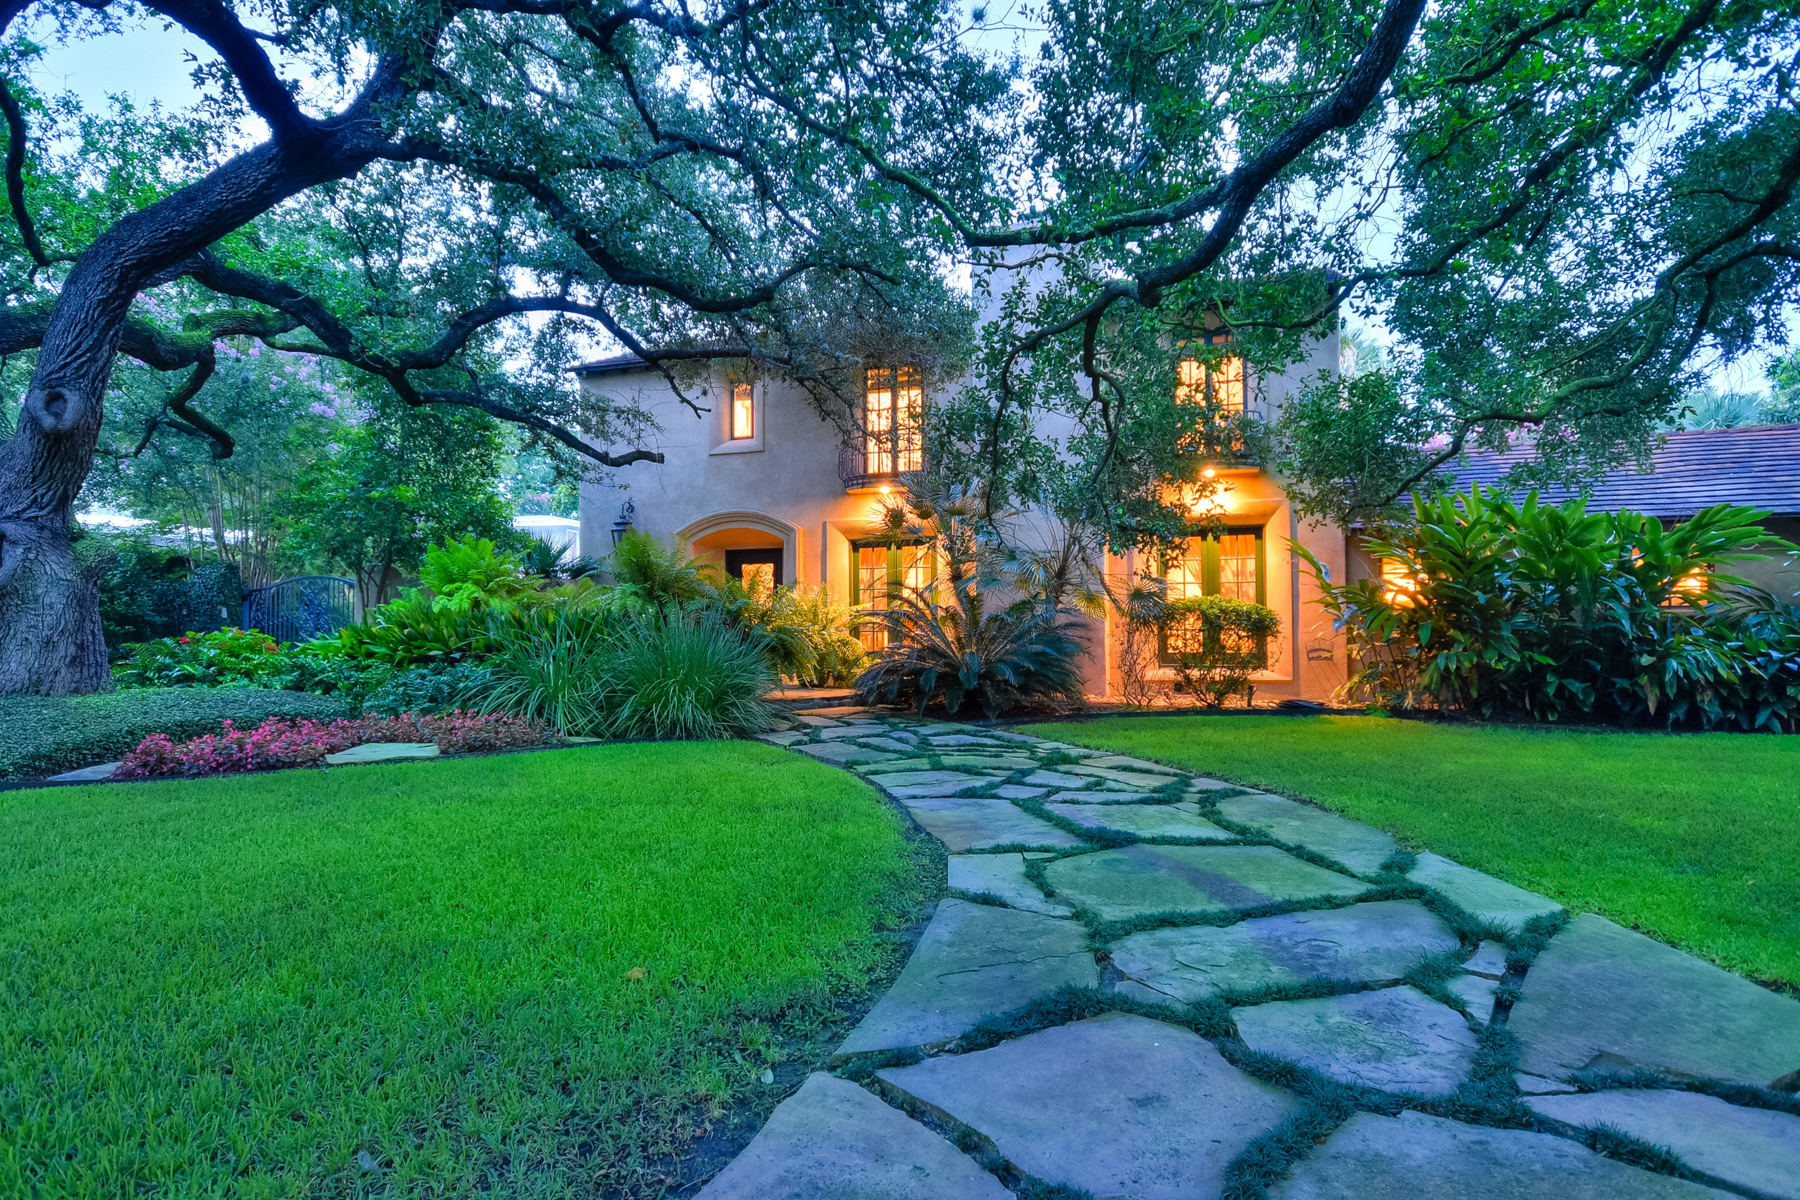 Casa Unifamiliar por un Venta en Magnificent Terrell Hills Estate 114 Gatewood Ct San Antonio, Texas, 78209 Estados Unidos